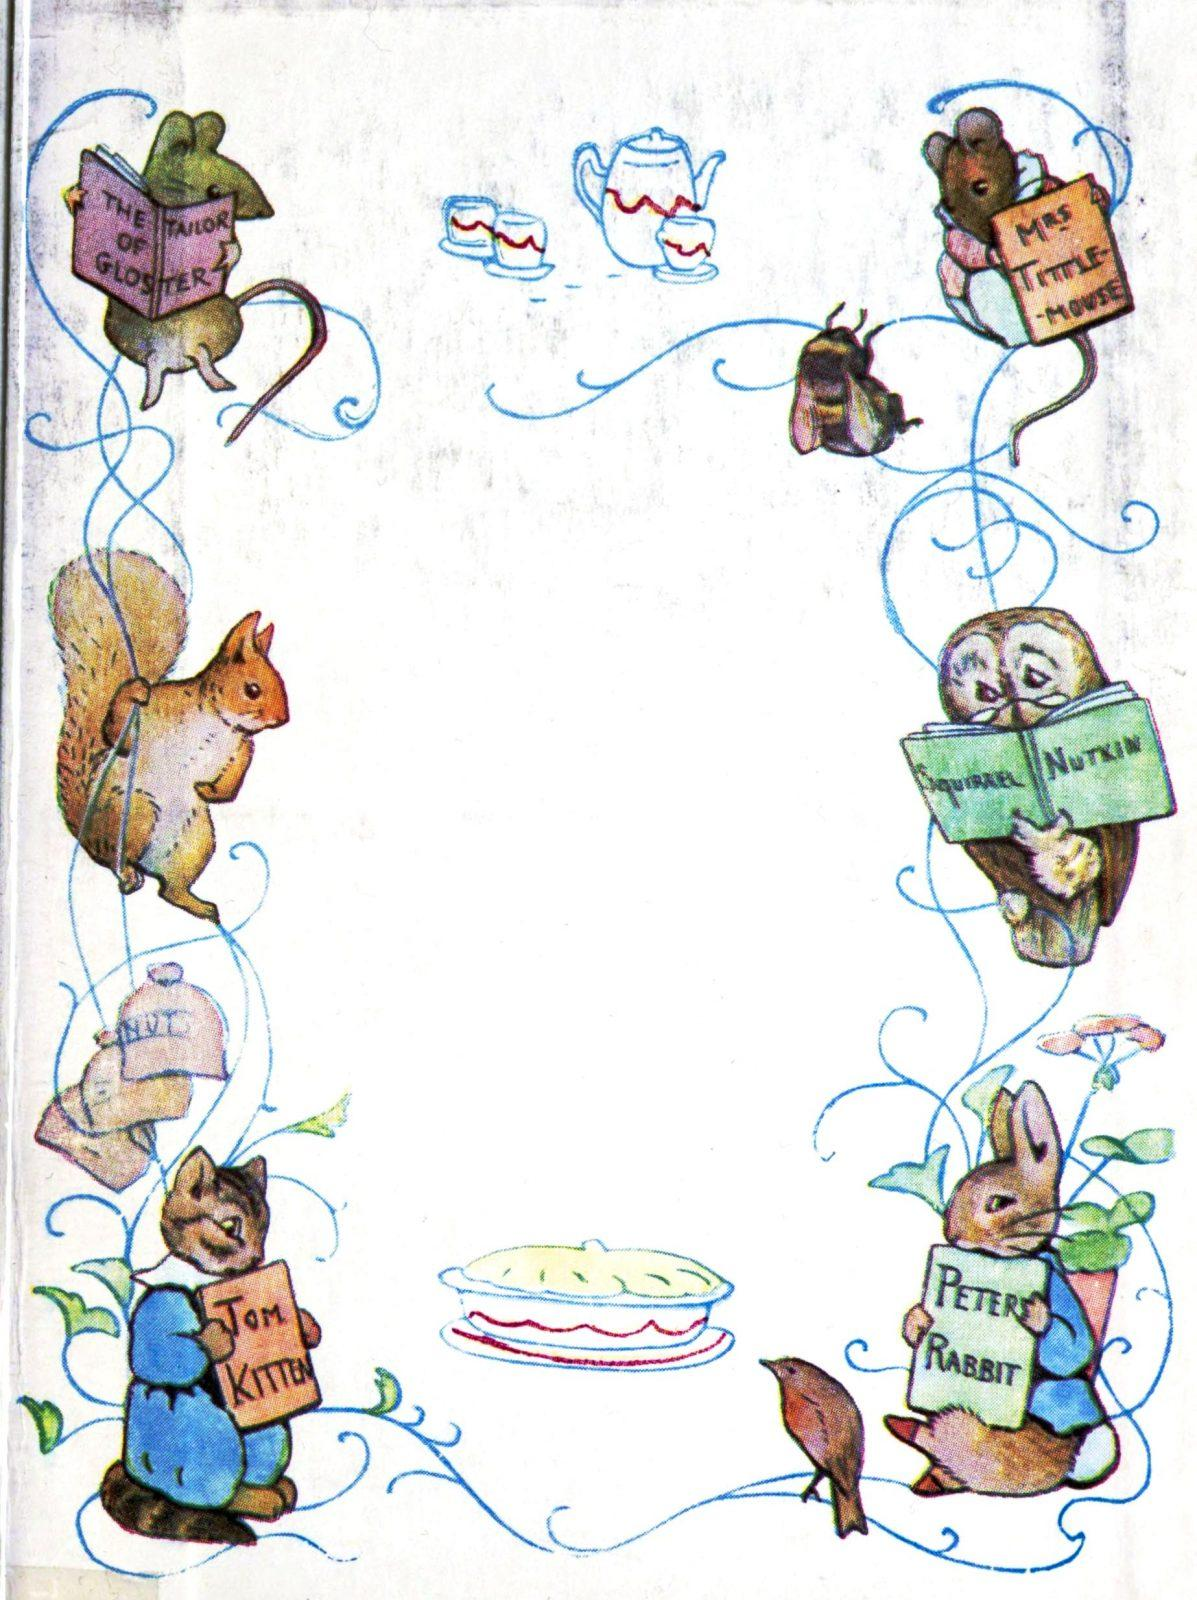 Peter Rabbit Wallpaper Border